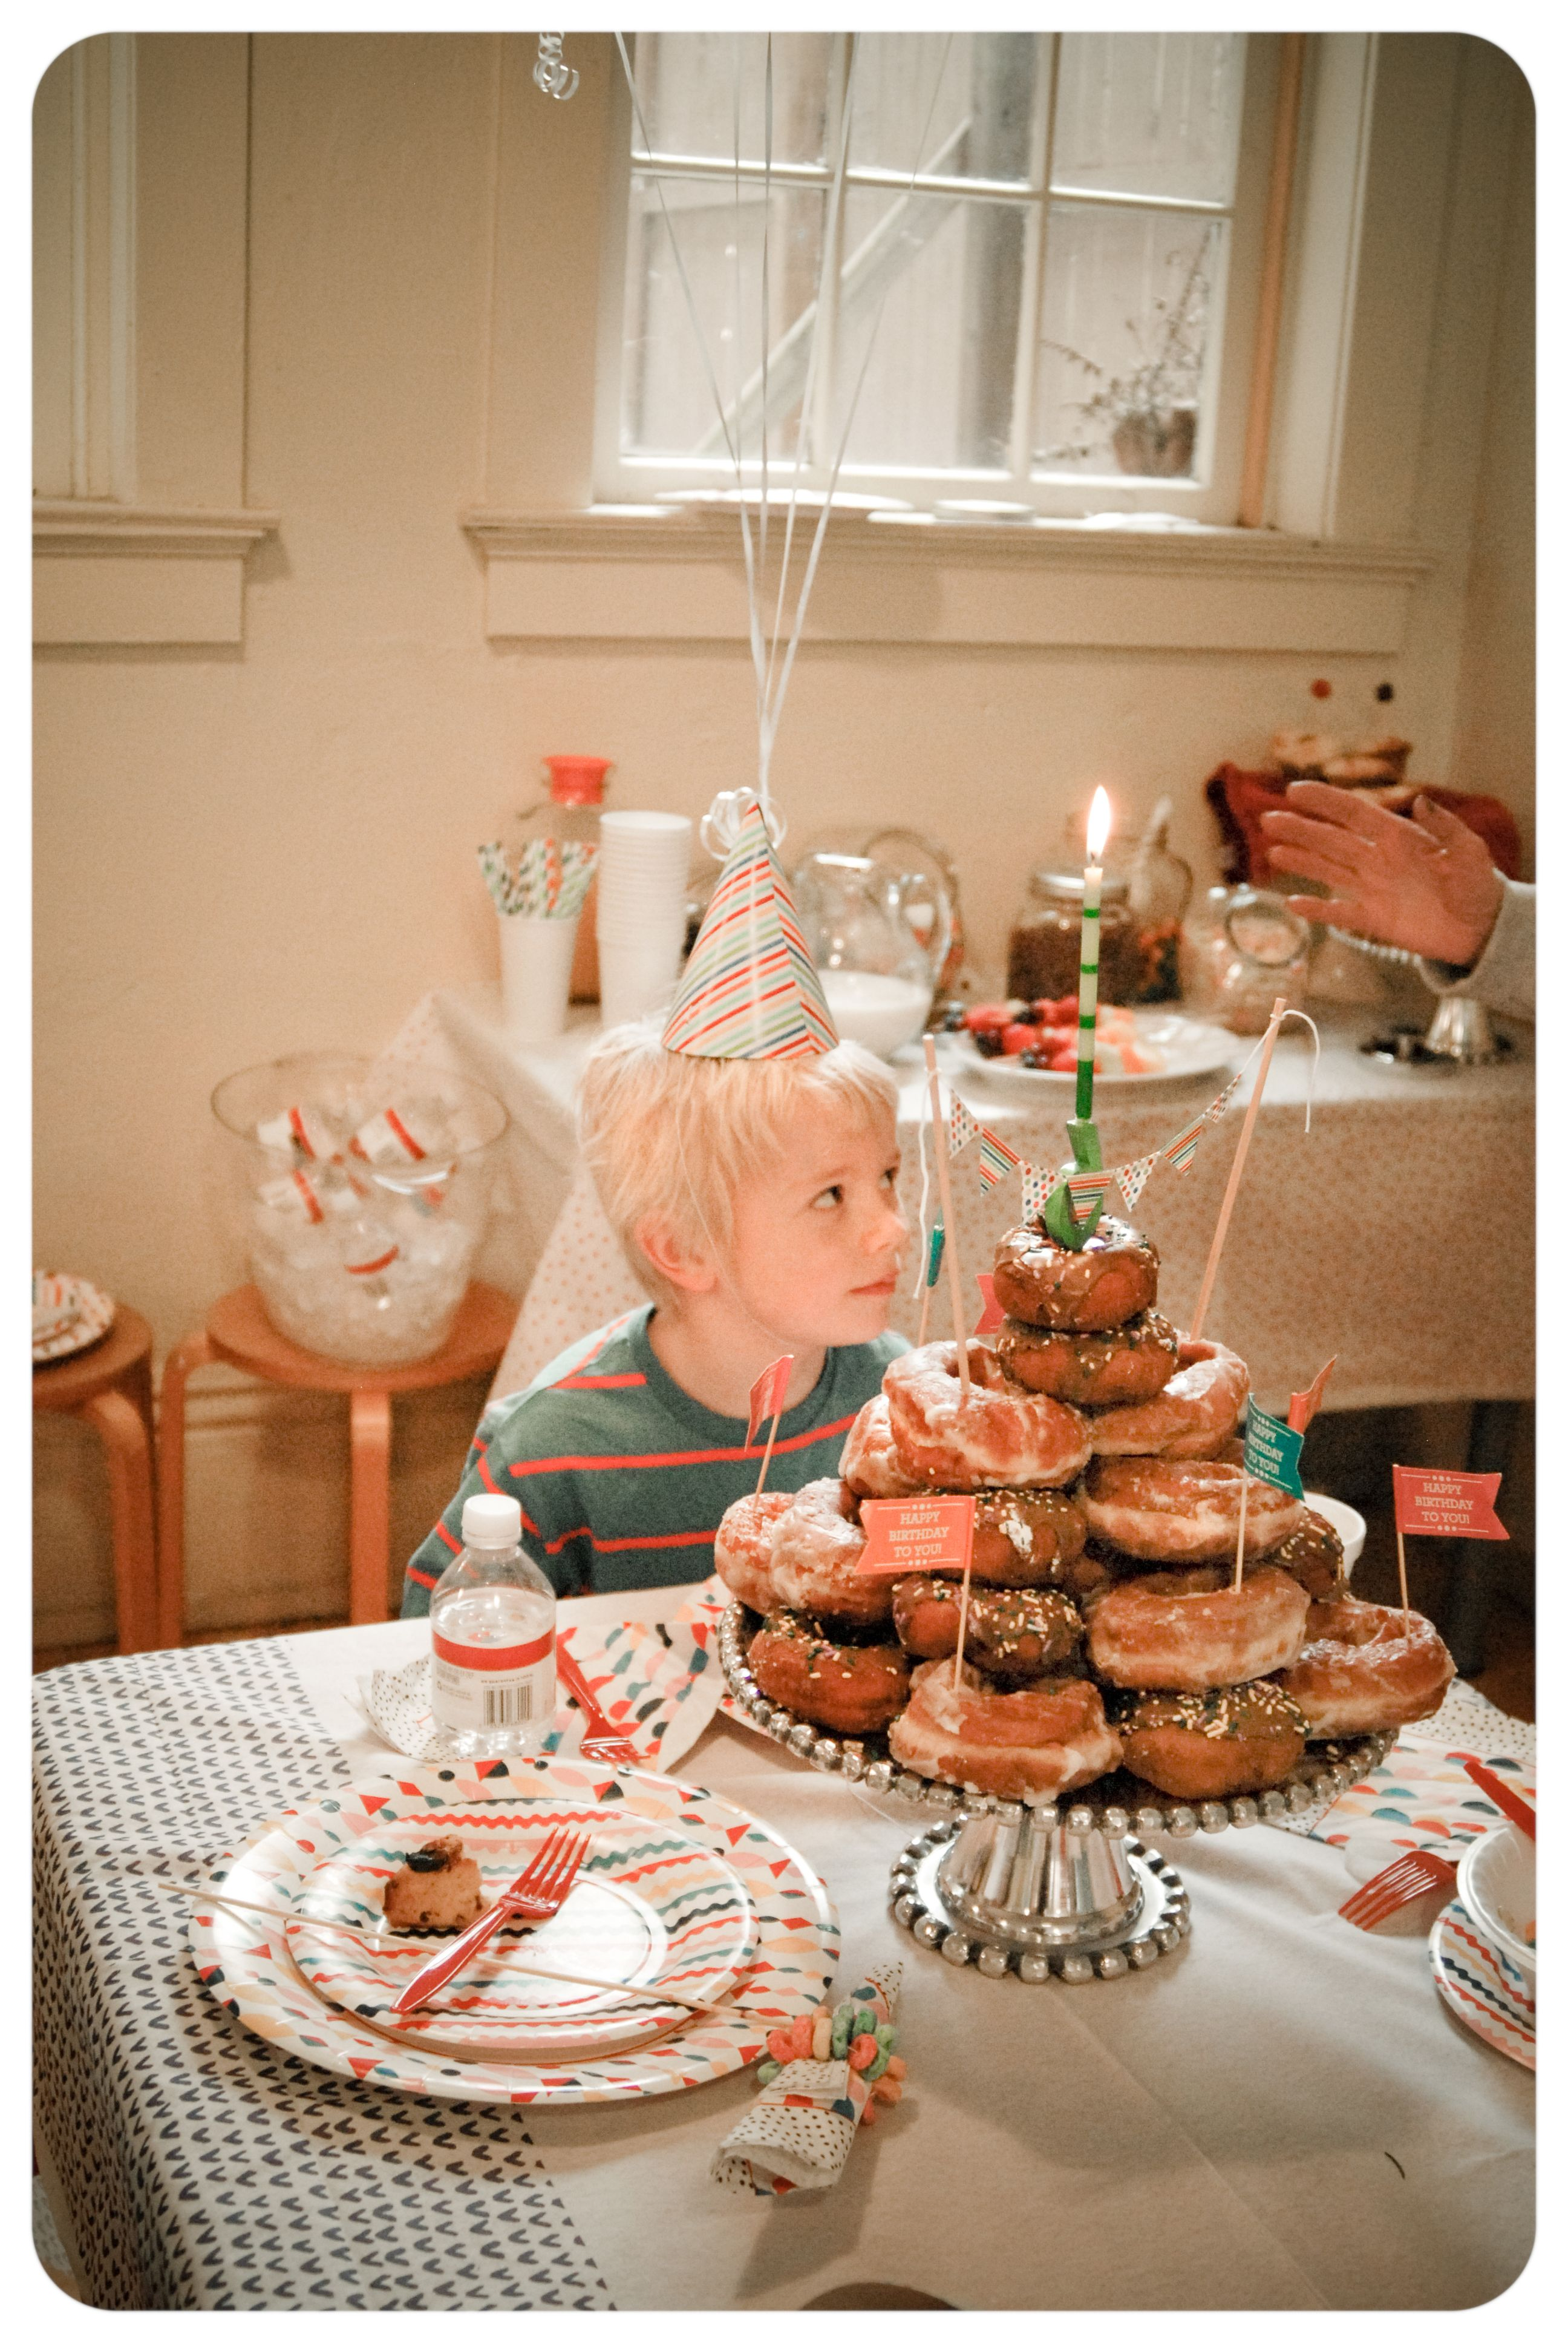 Breakfast Birthday Party Equipped With Donut Cake Check Out The